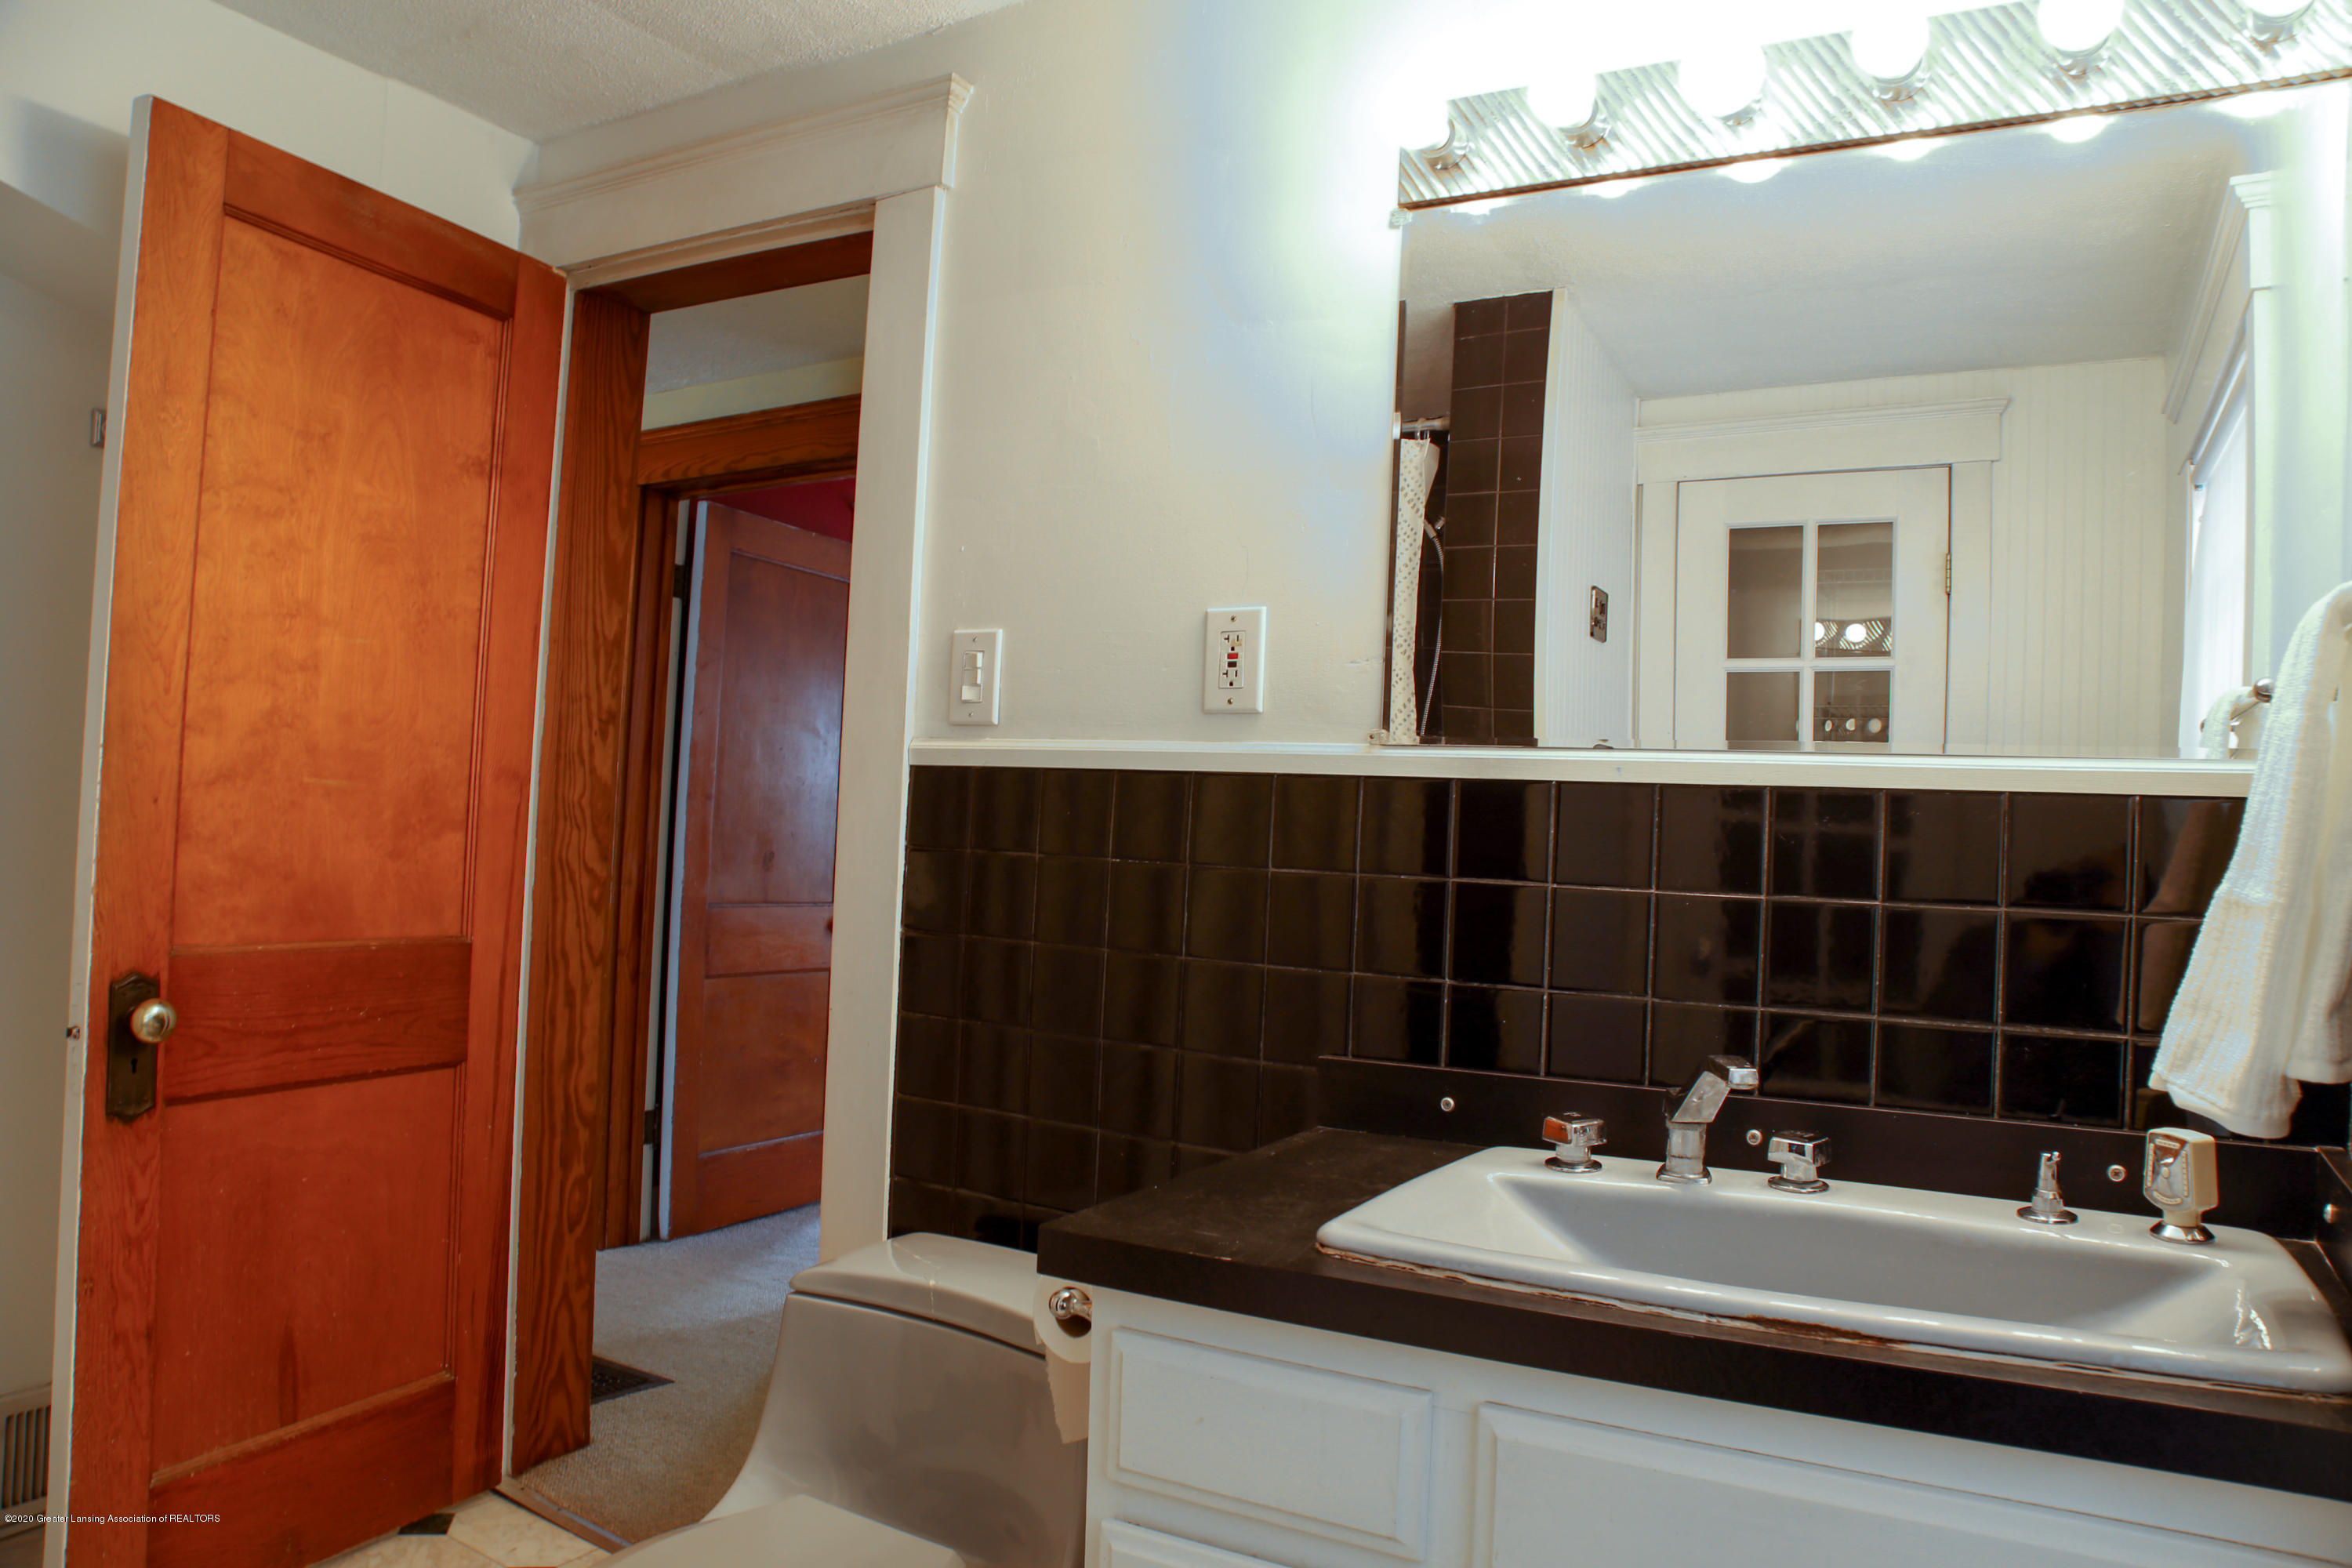 2005 Forest Ave - bathroom - 23